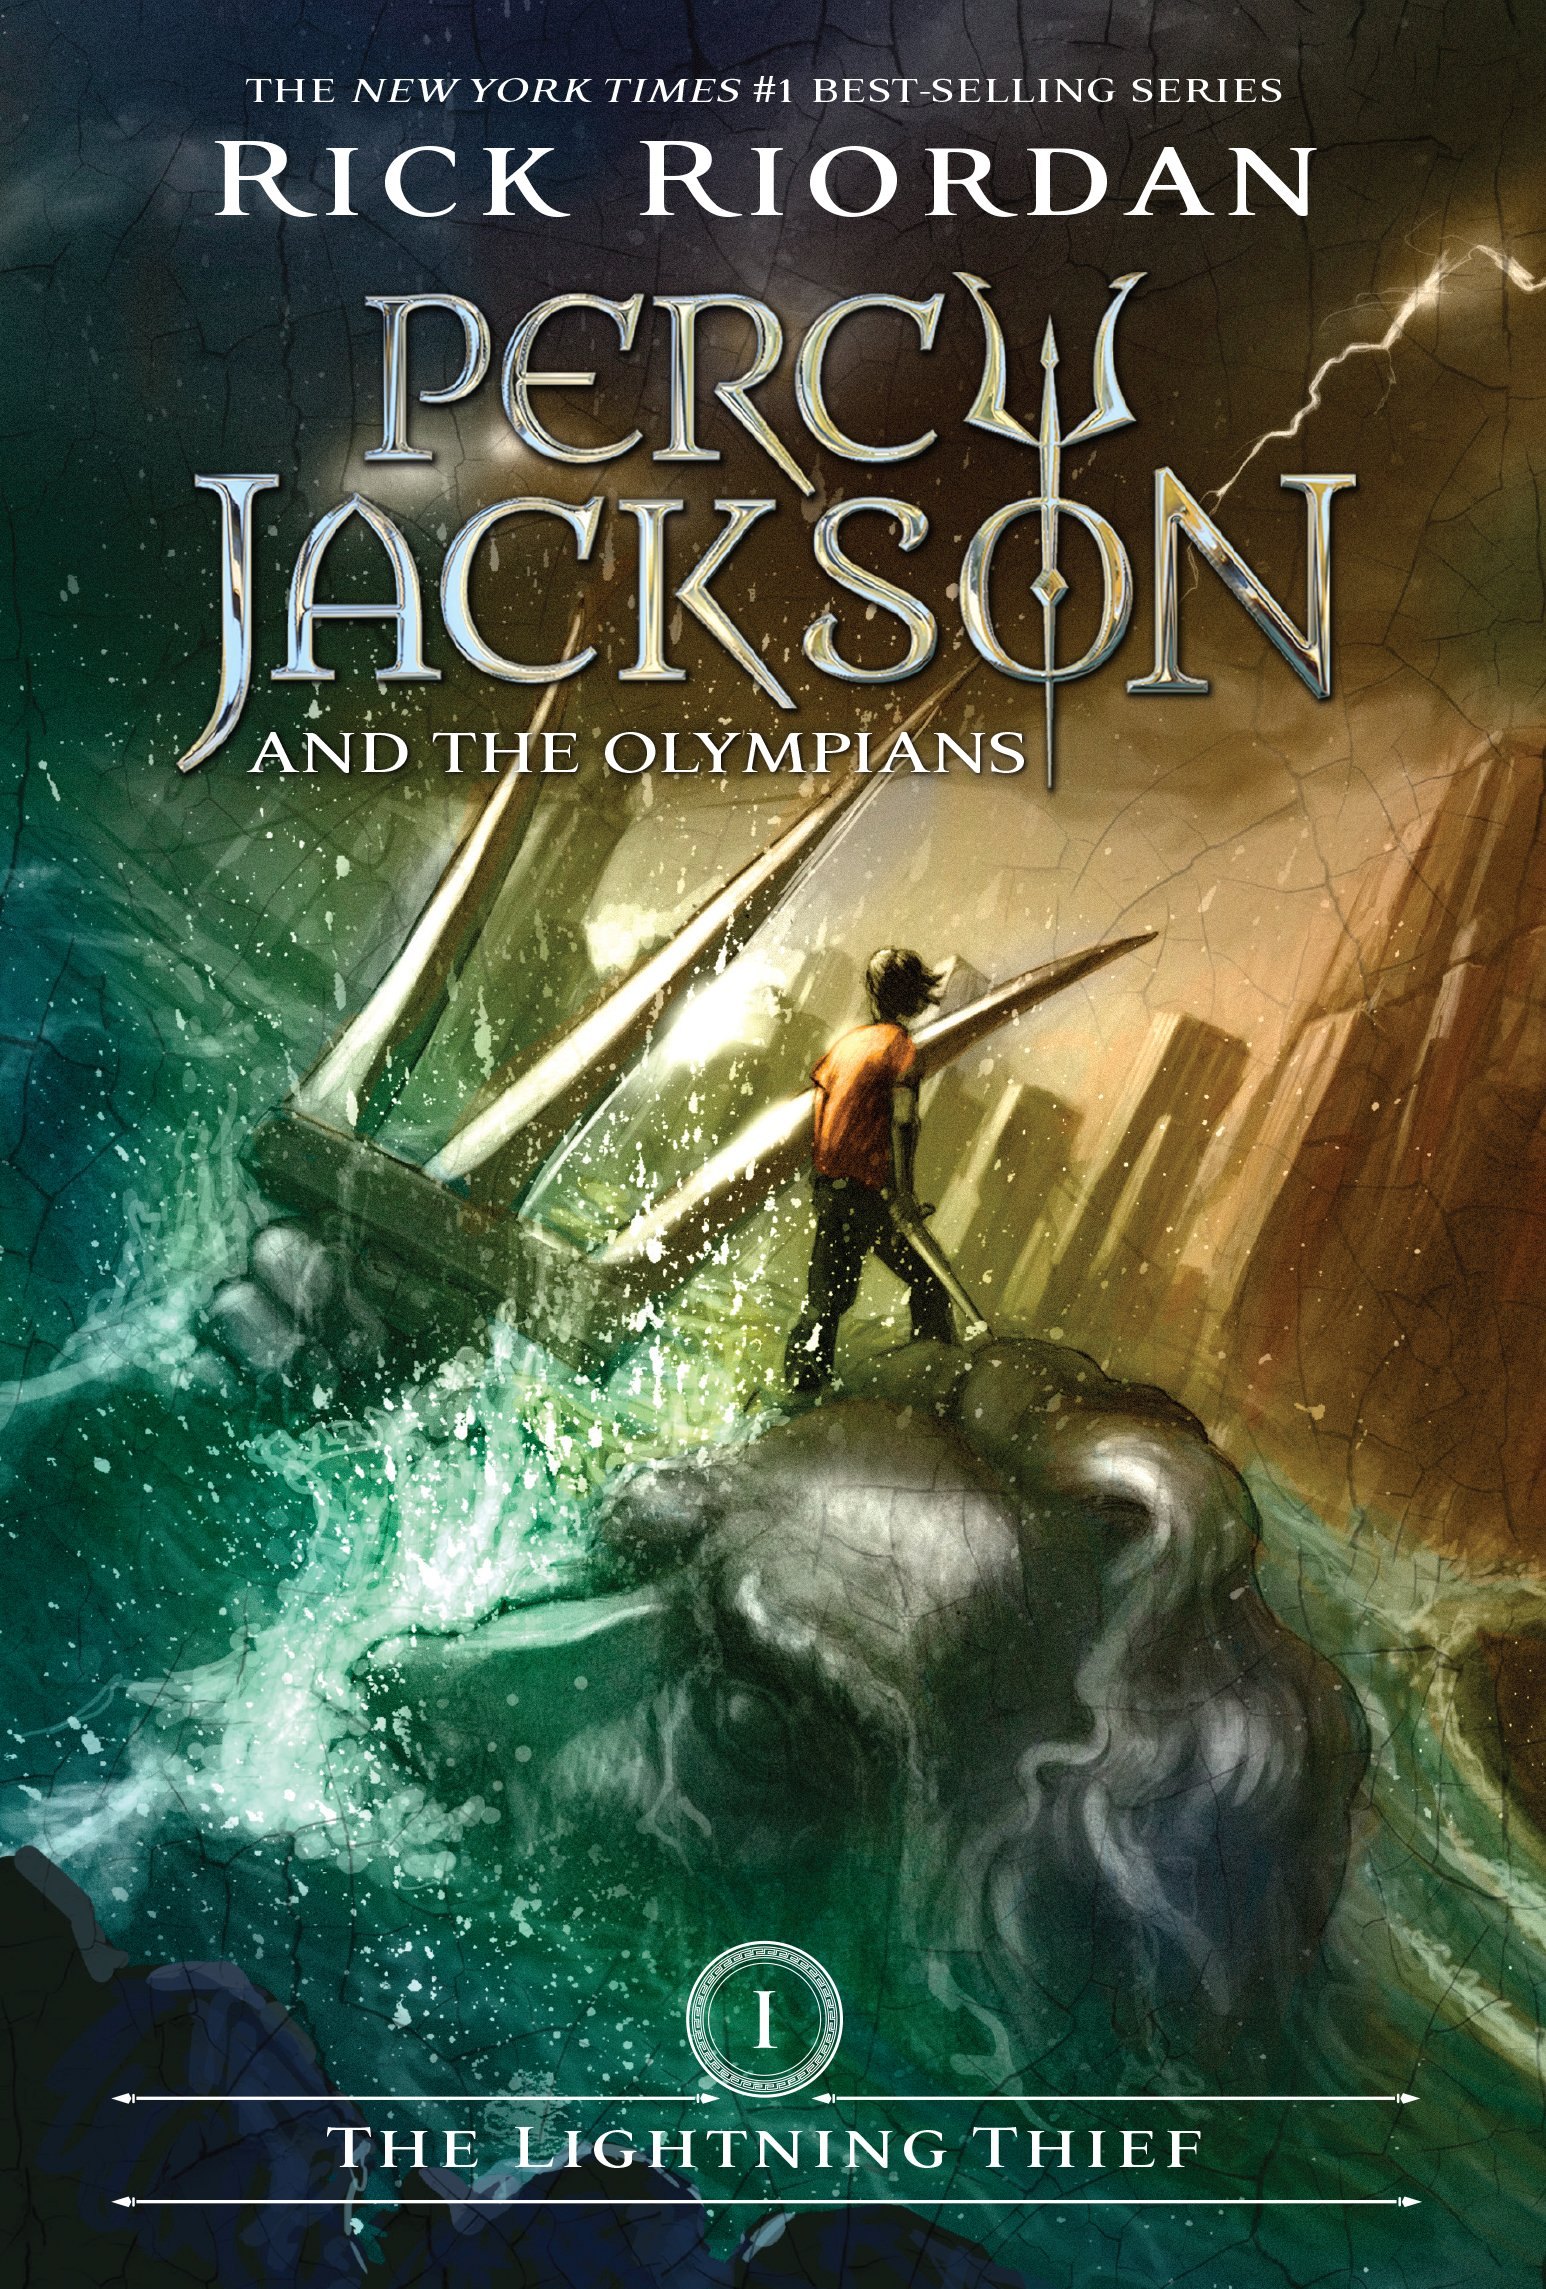 Percy Jackson and the Olympians: The Lightning Thief by Rick Riordan (Cover)